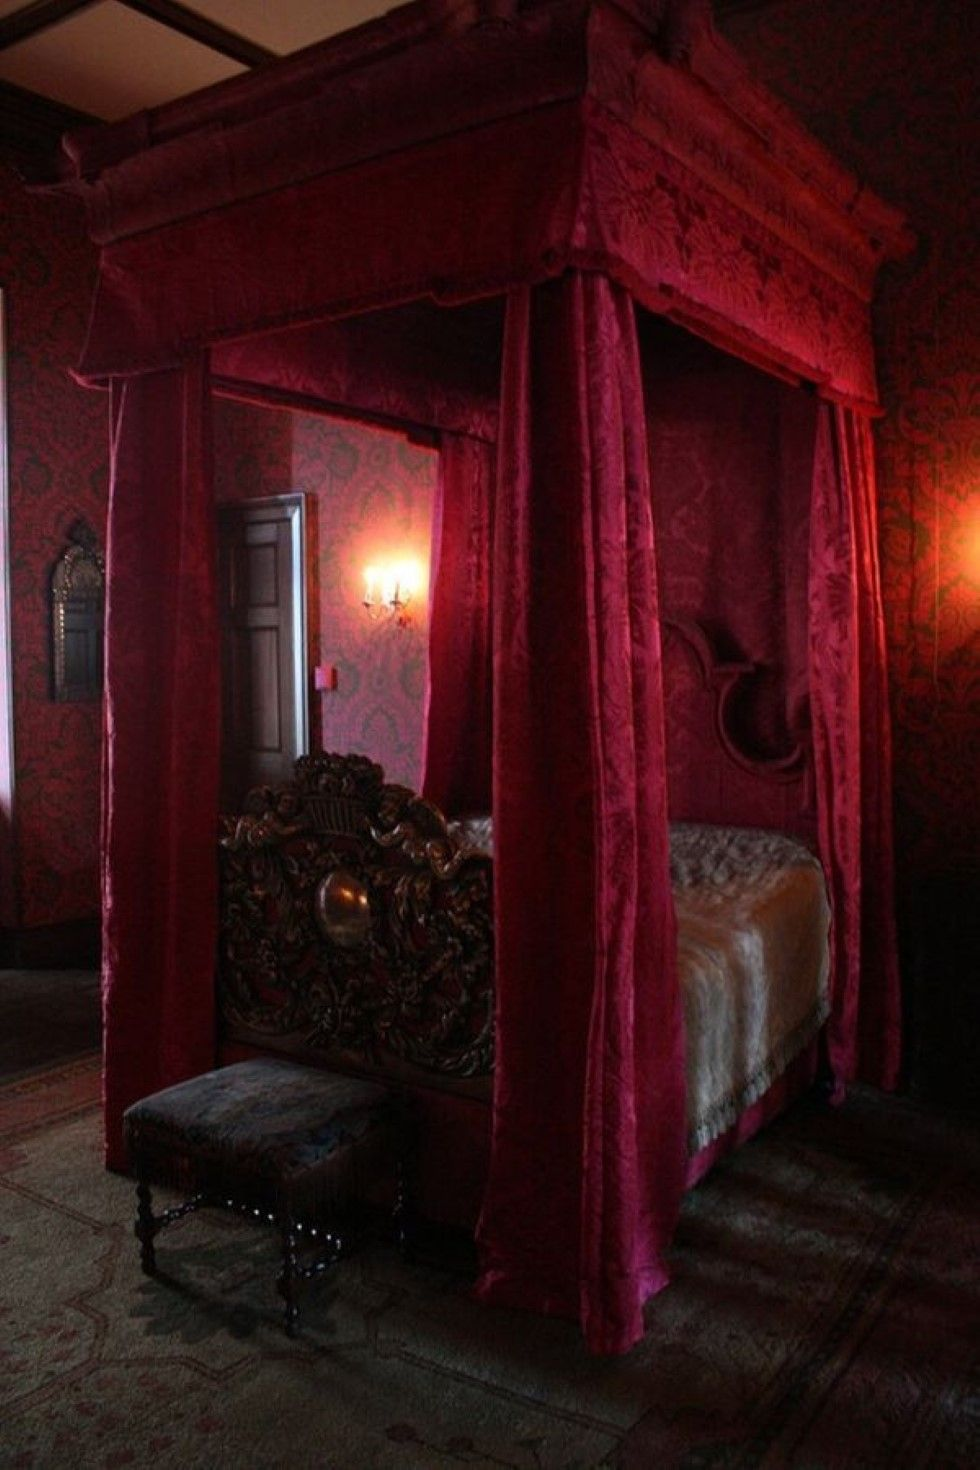 Best Boxwoodilative Reb Eum With Images Bedroom Red Gothic 400 x 300